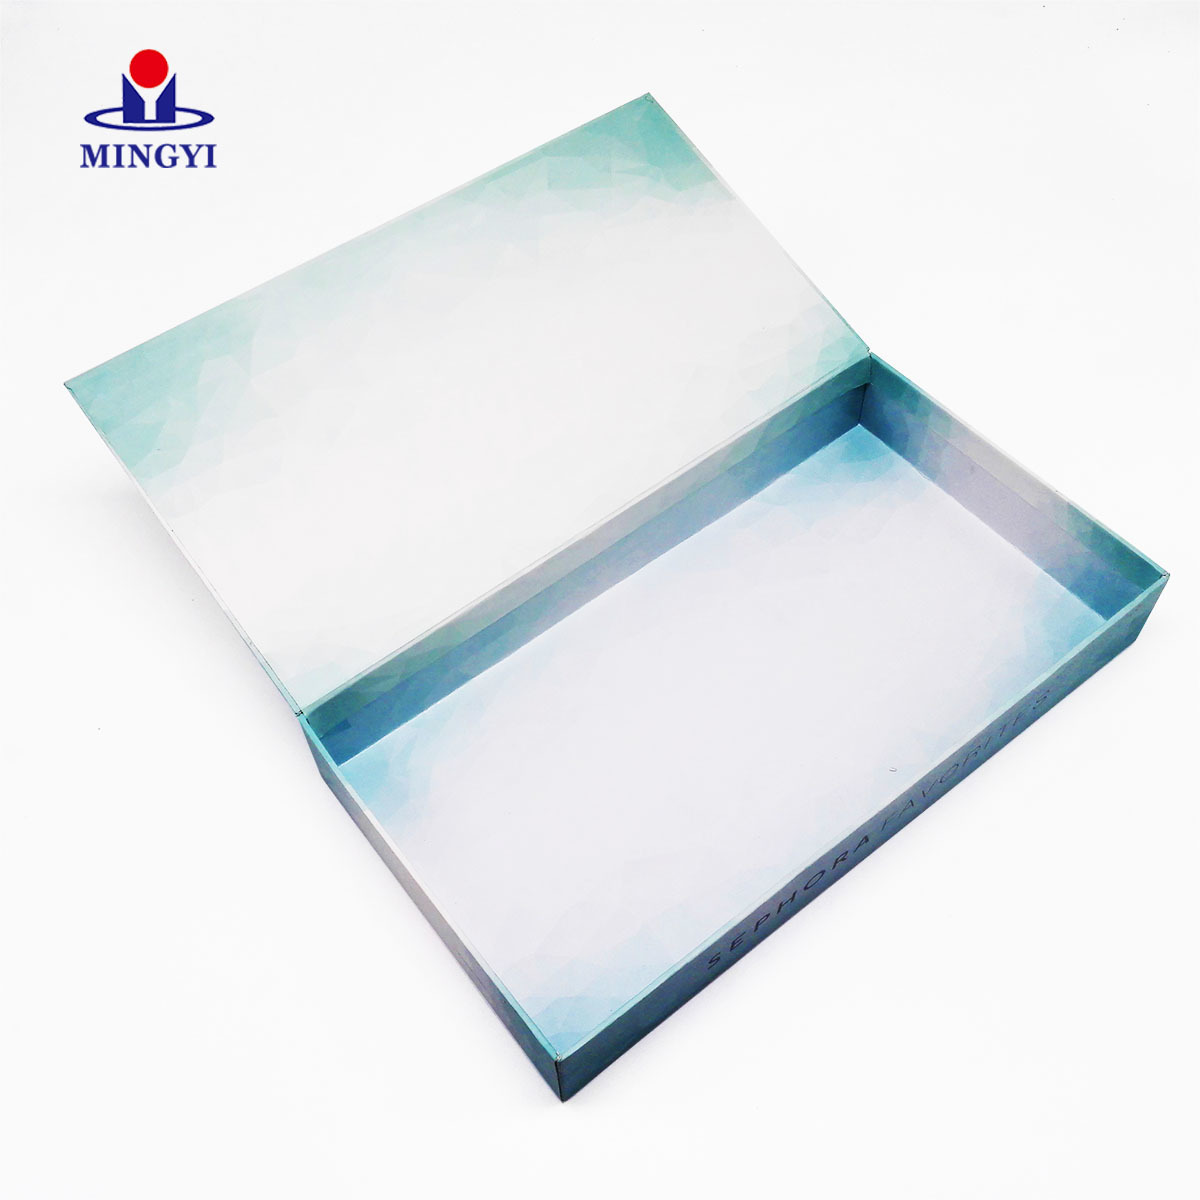 New customized biodegradable cosmetic packaging use clamshell design